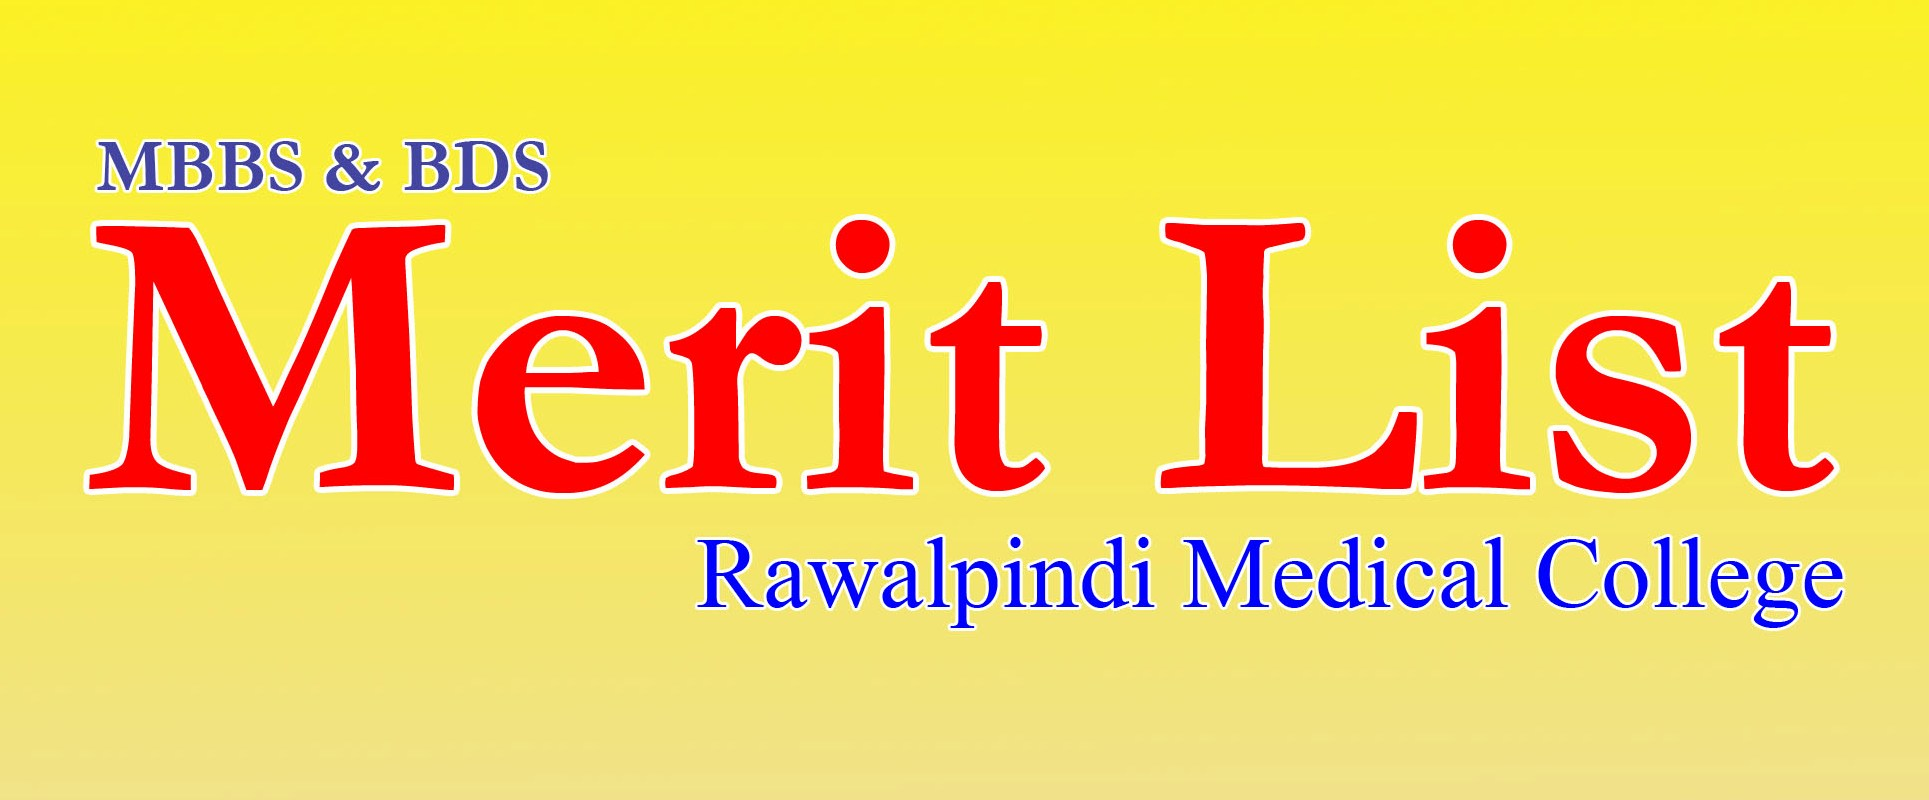 Rawalpindi Medical College RMC MBBS BDS Merit List 2019 | WebStudy